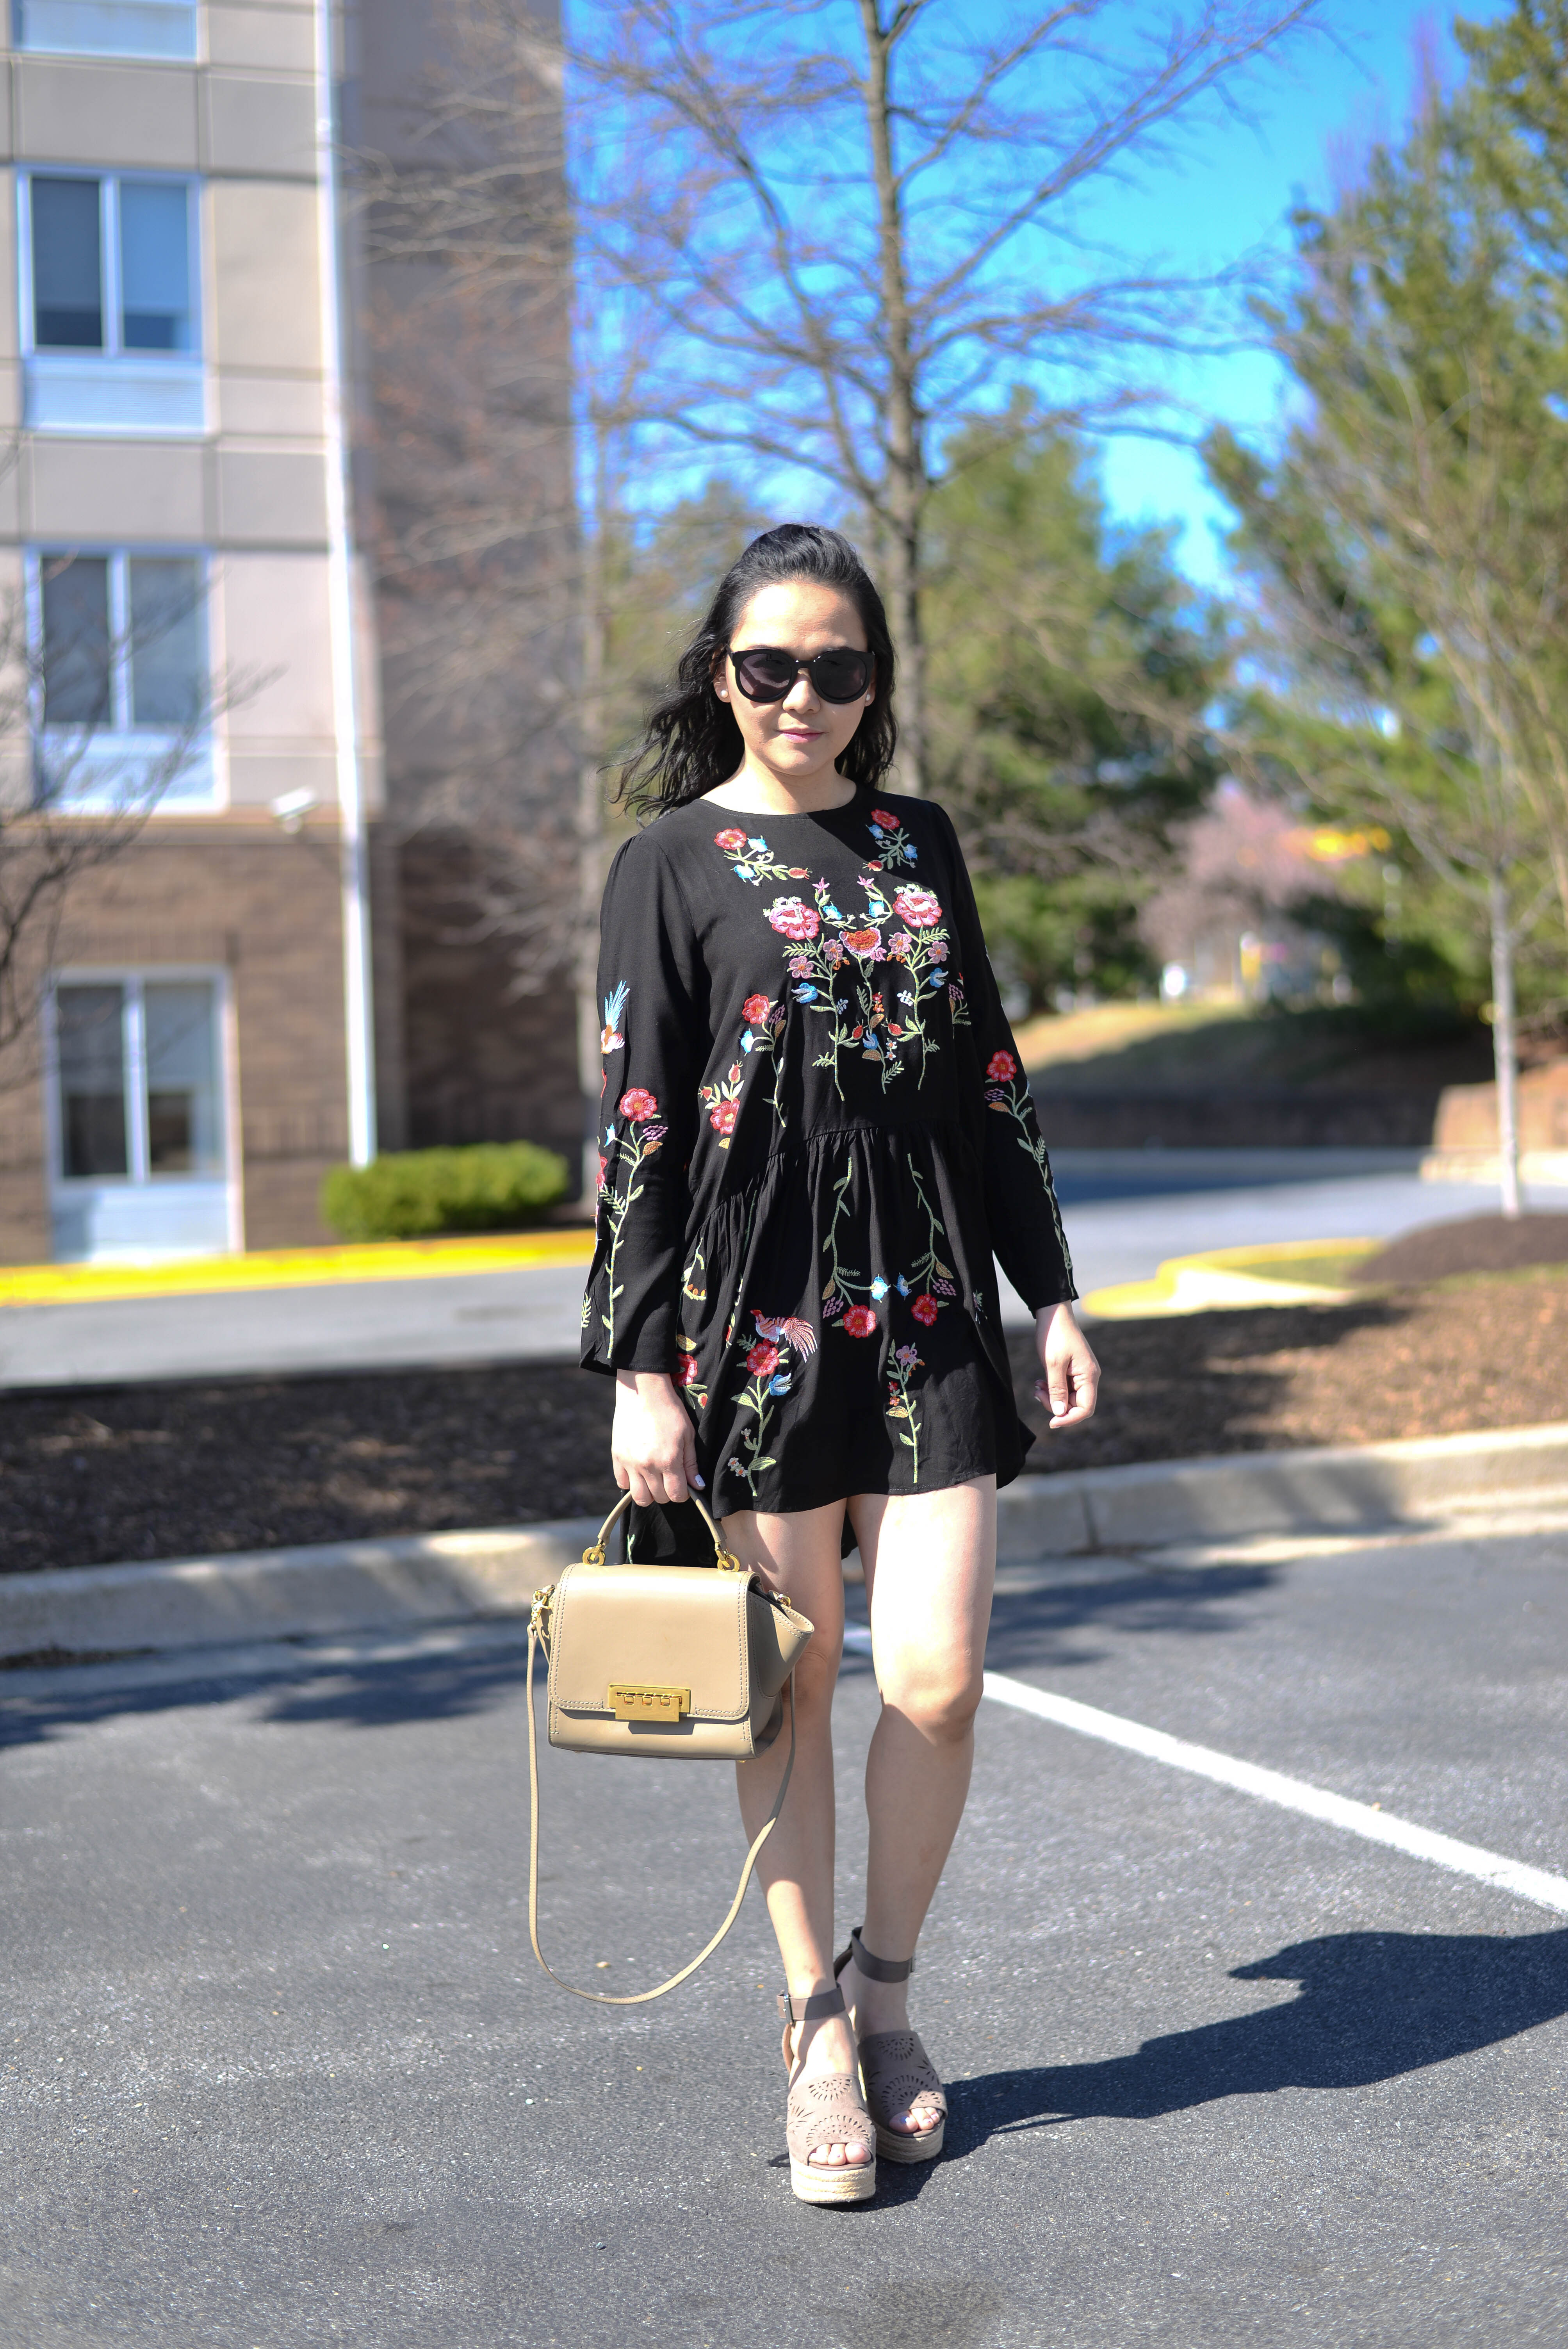 Spring Forward with my Floral Embroidered Dress